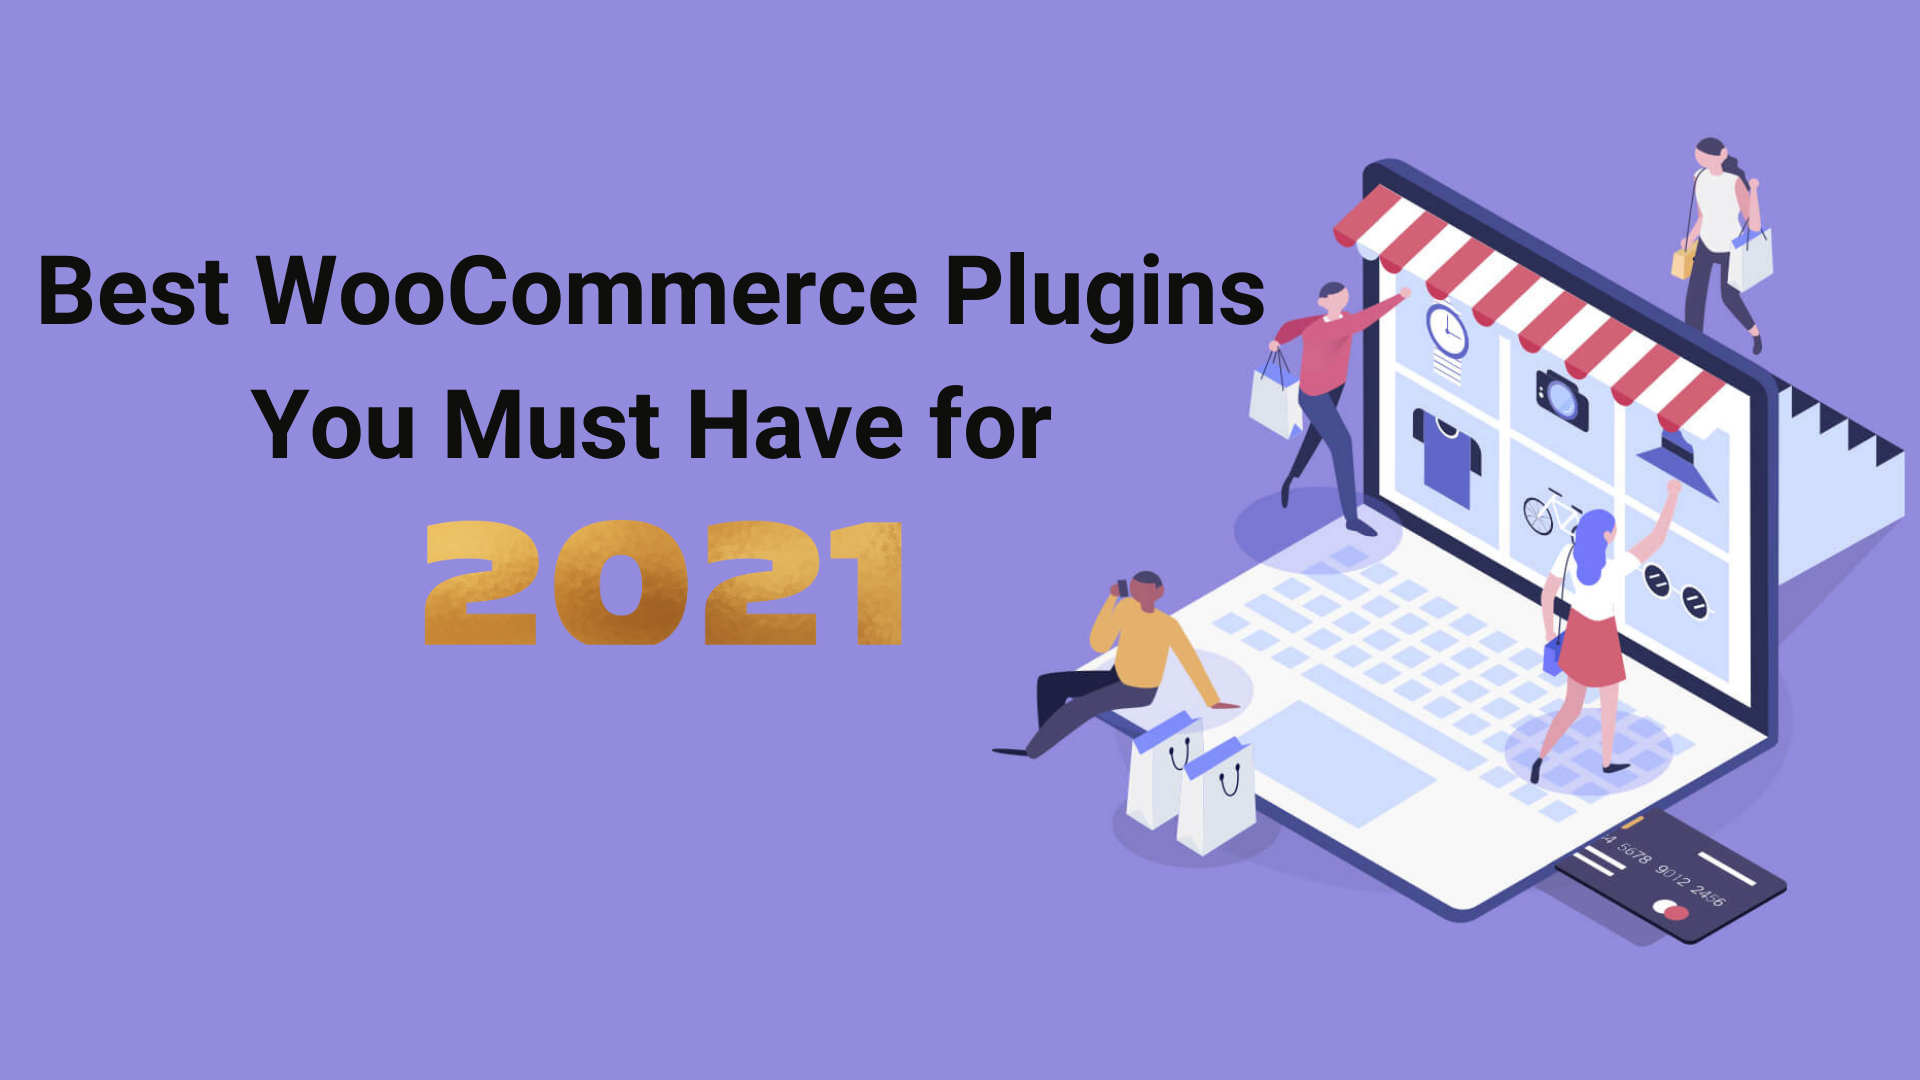 Best WooCommerce plugins you must have for 2021